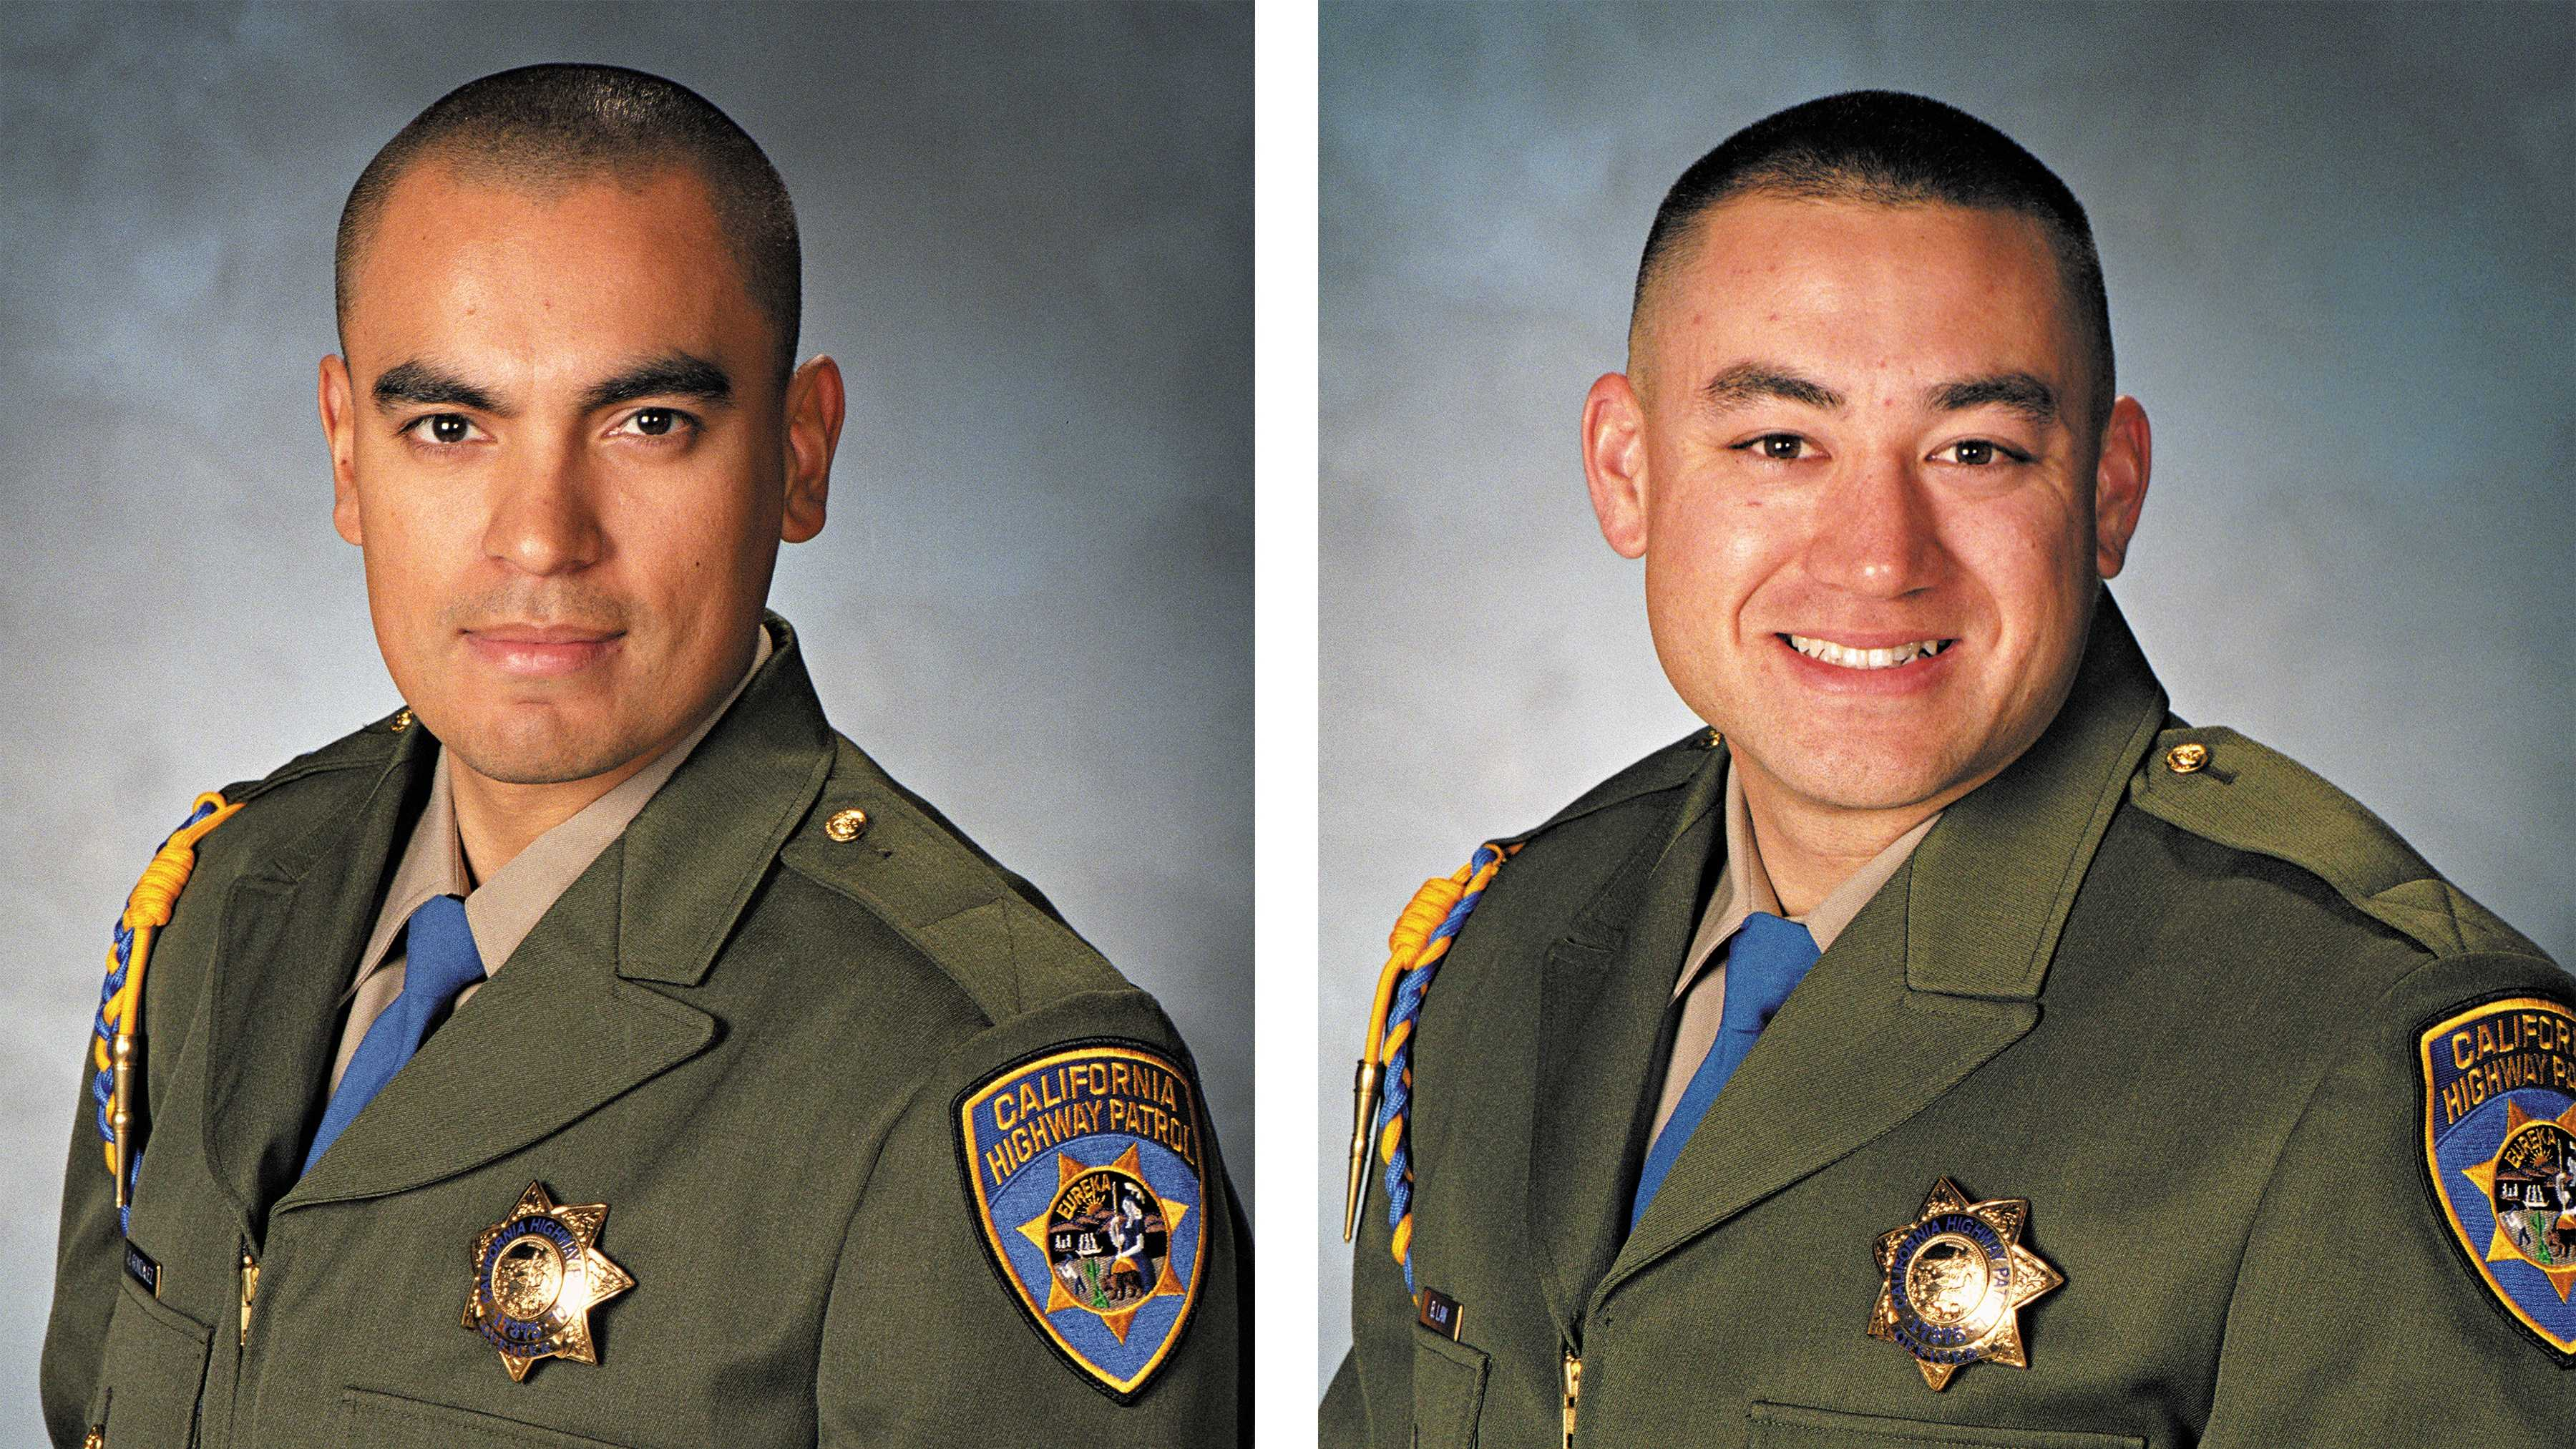 CHP Officers Brian Law and Juan Gonzalez